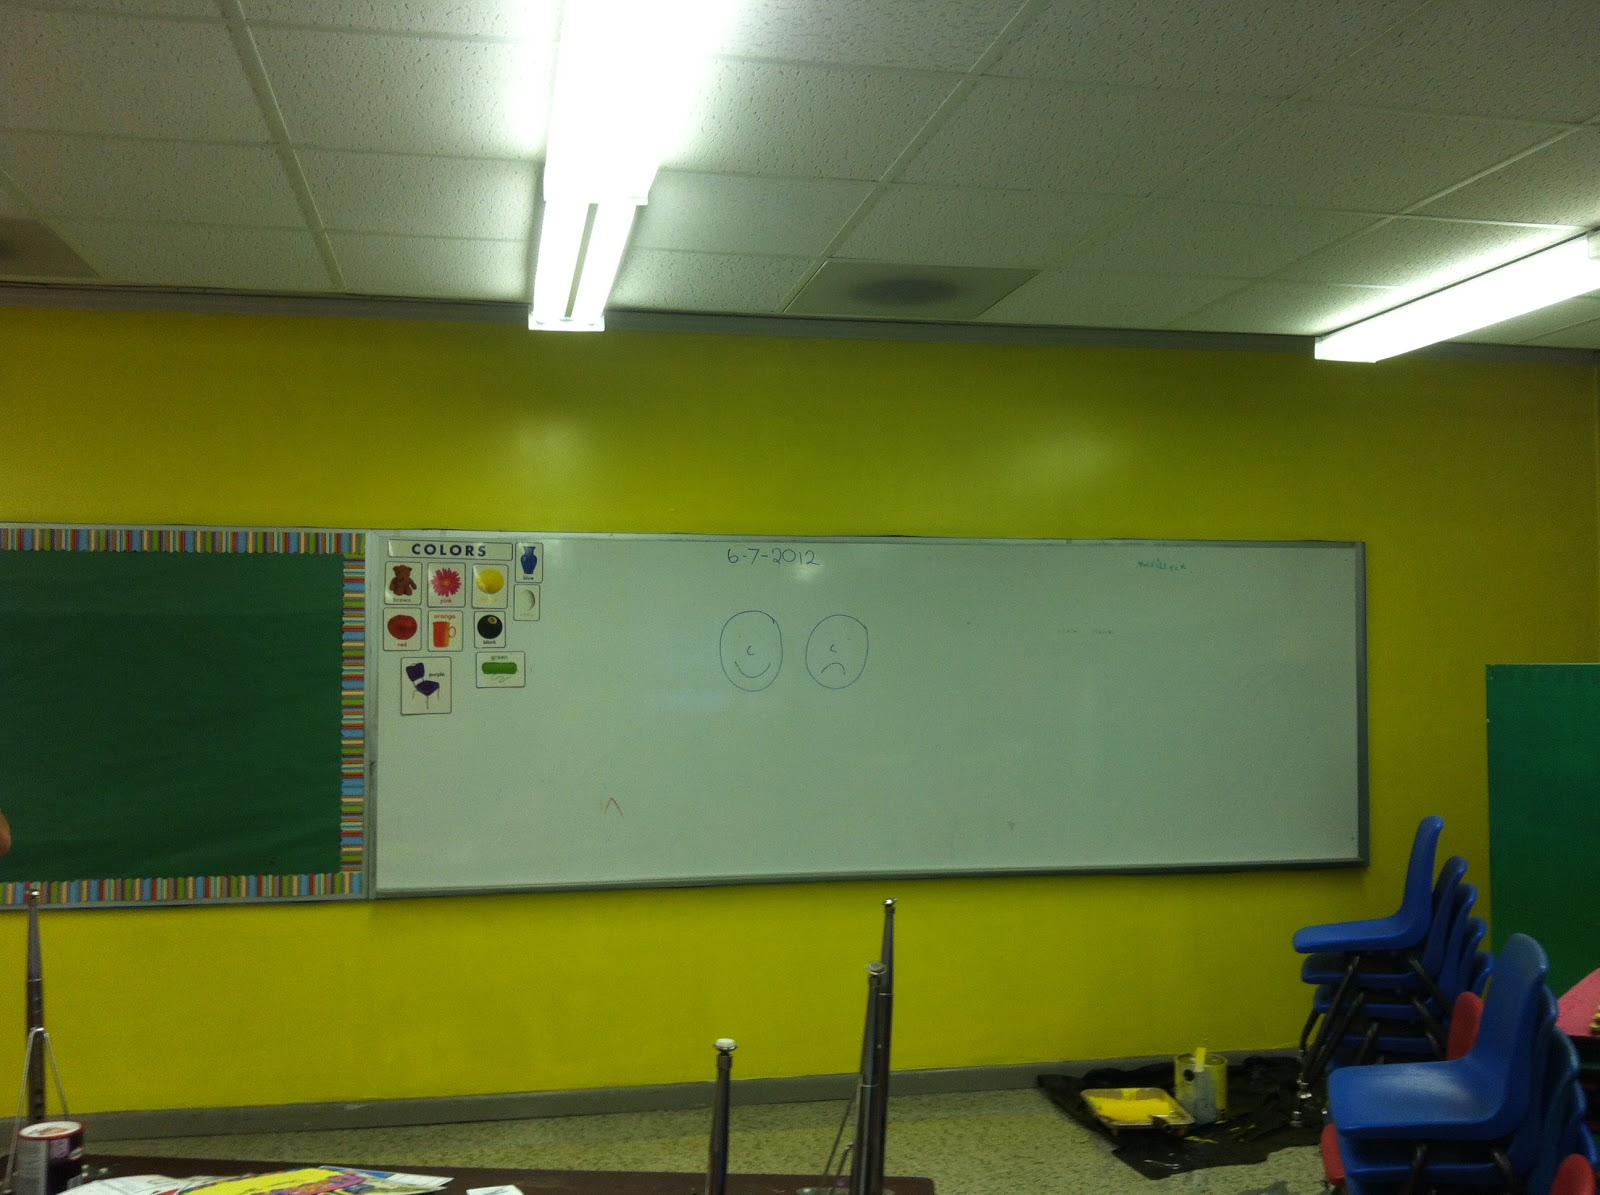 ... classroom wall clip art displaying 20 images for classroom wall clip